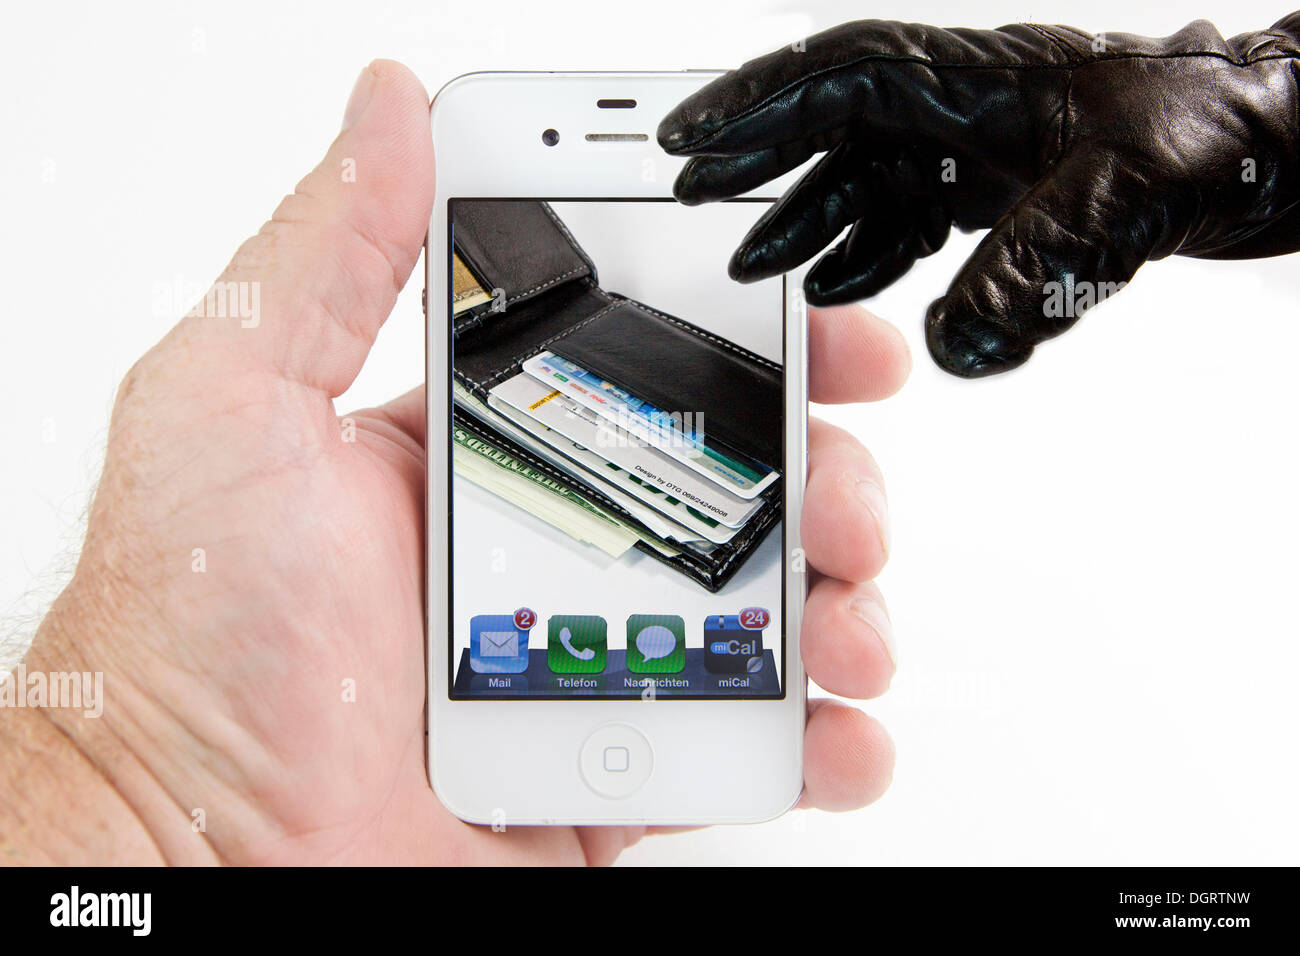 Gloved hand reaching for wallet on smartphone display, symbolic image for the theft of sensitive data from a mobile phone - Stock Image